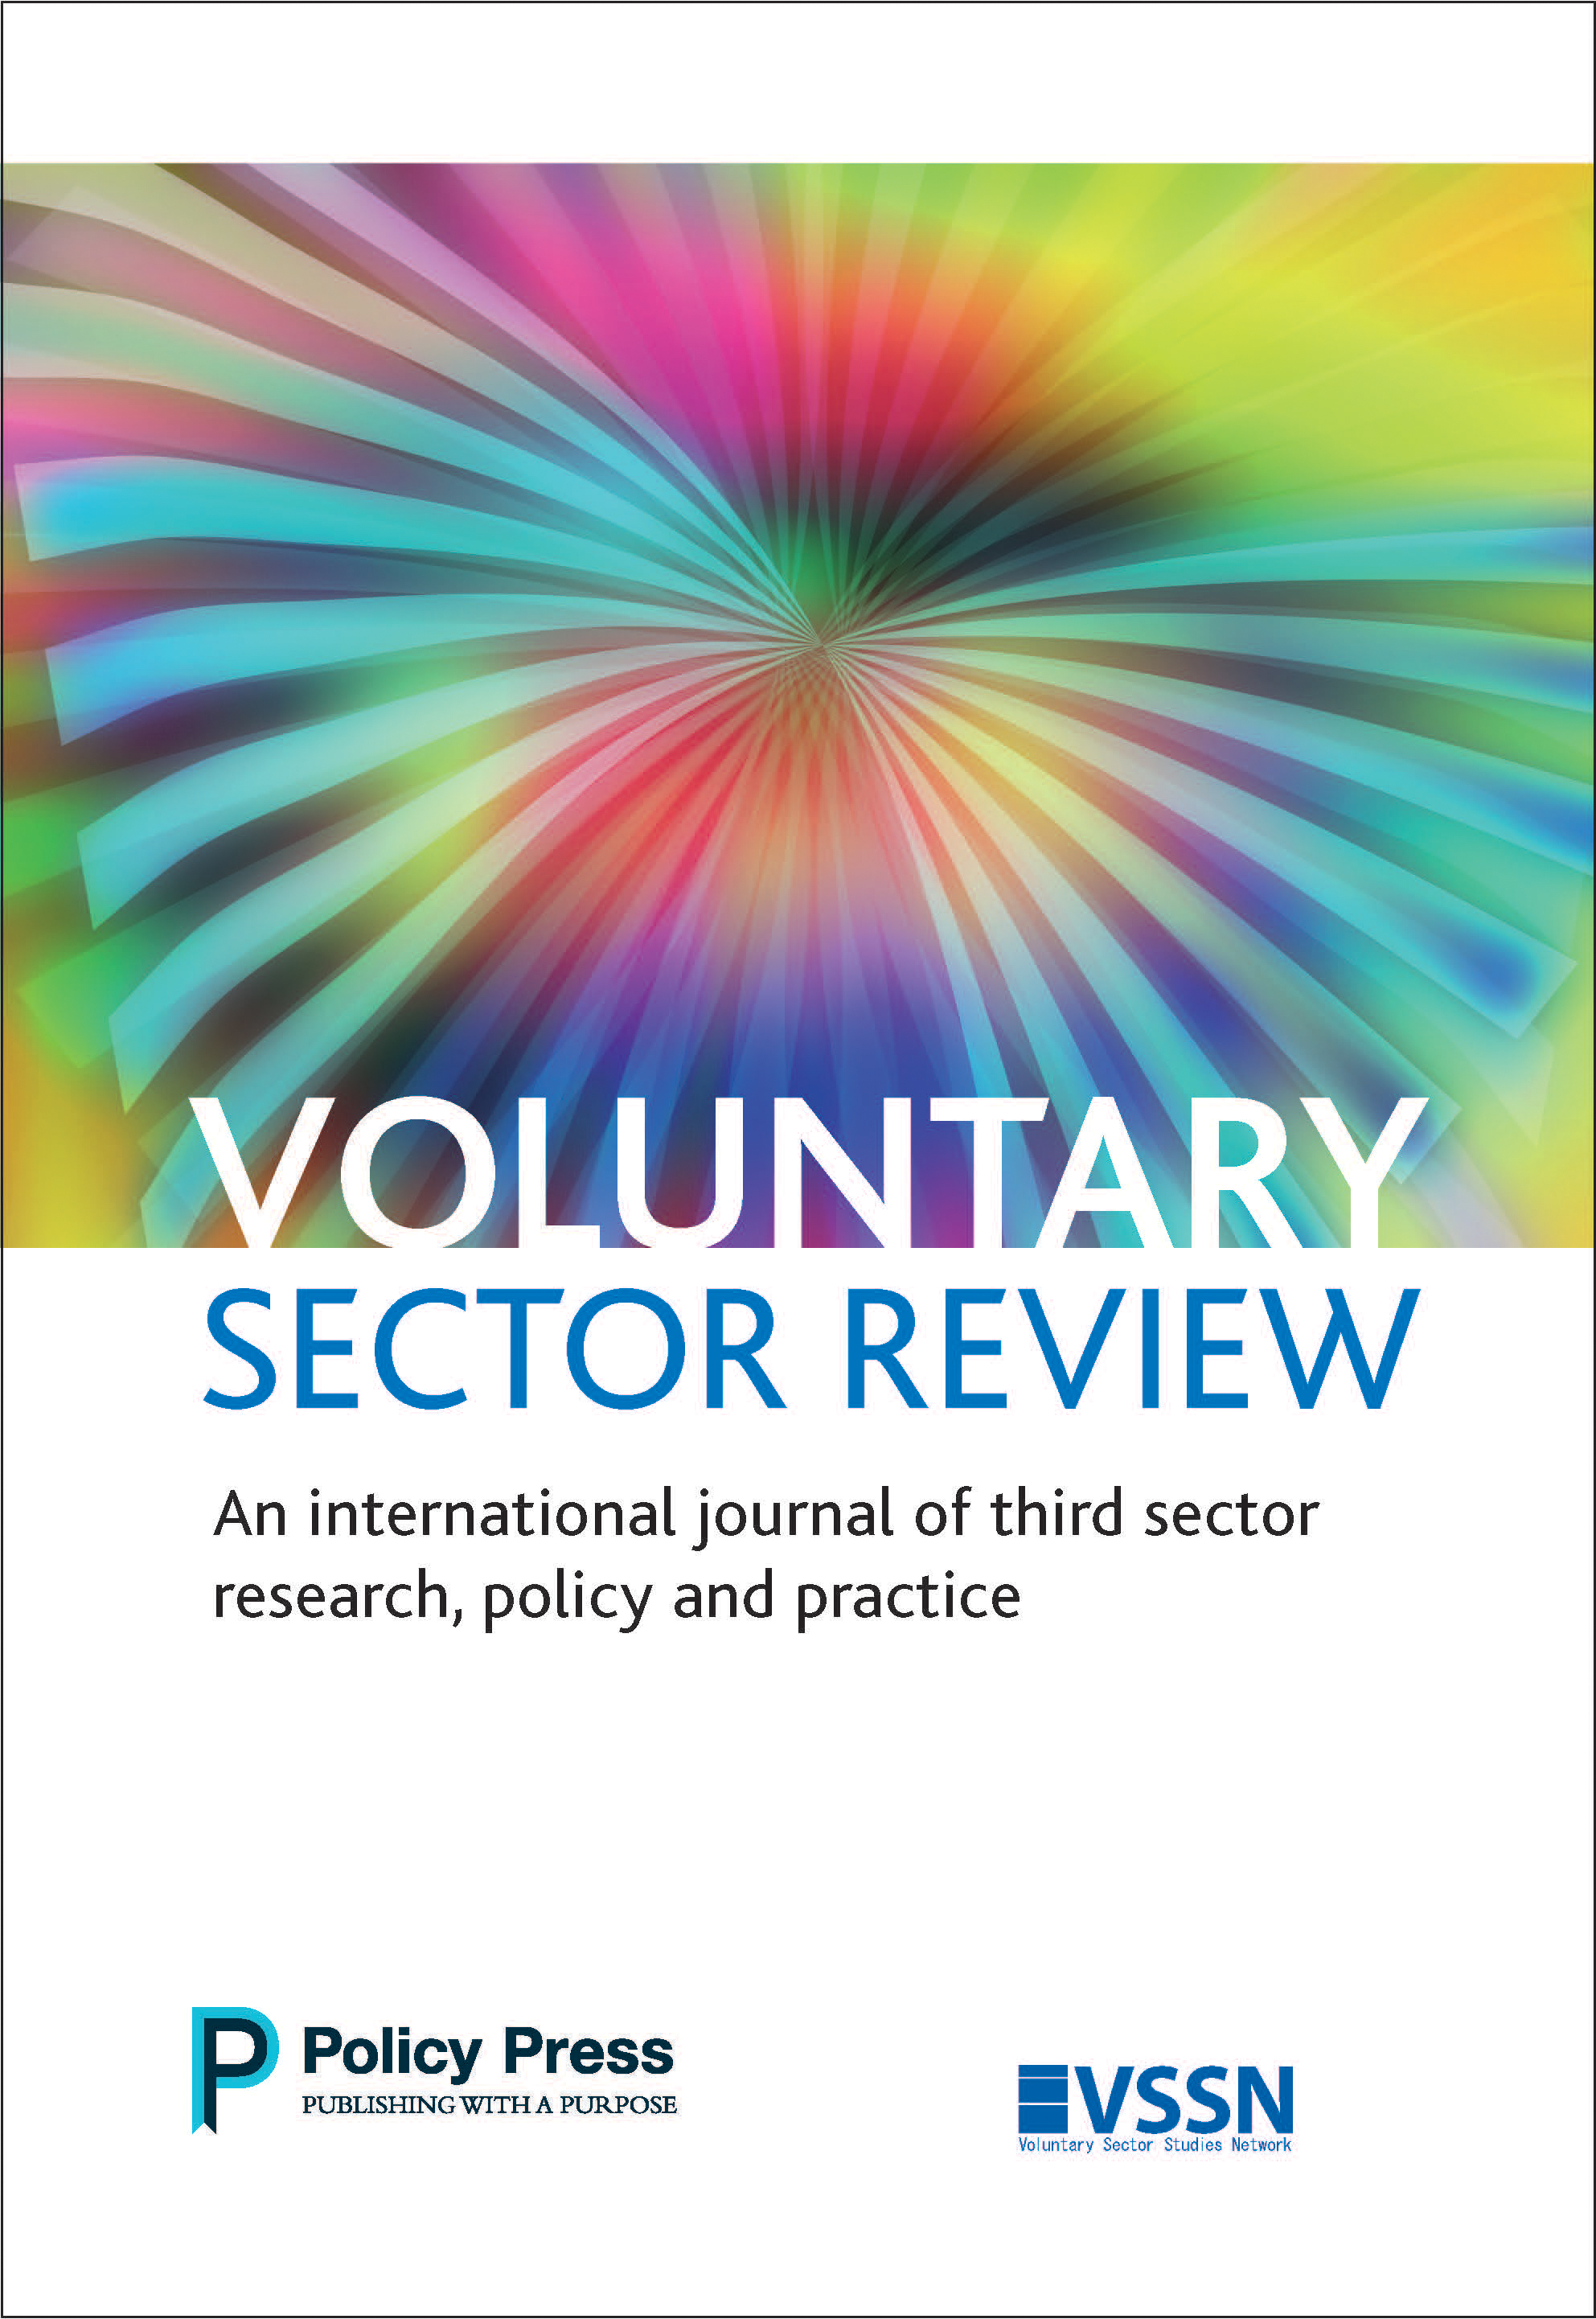 Voluntary sector review cover